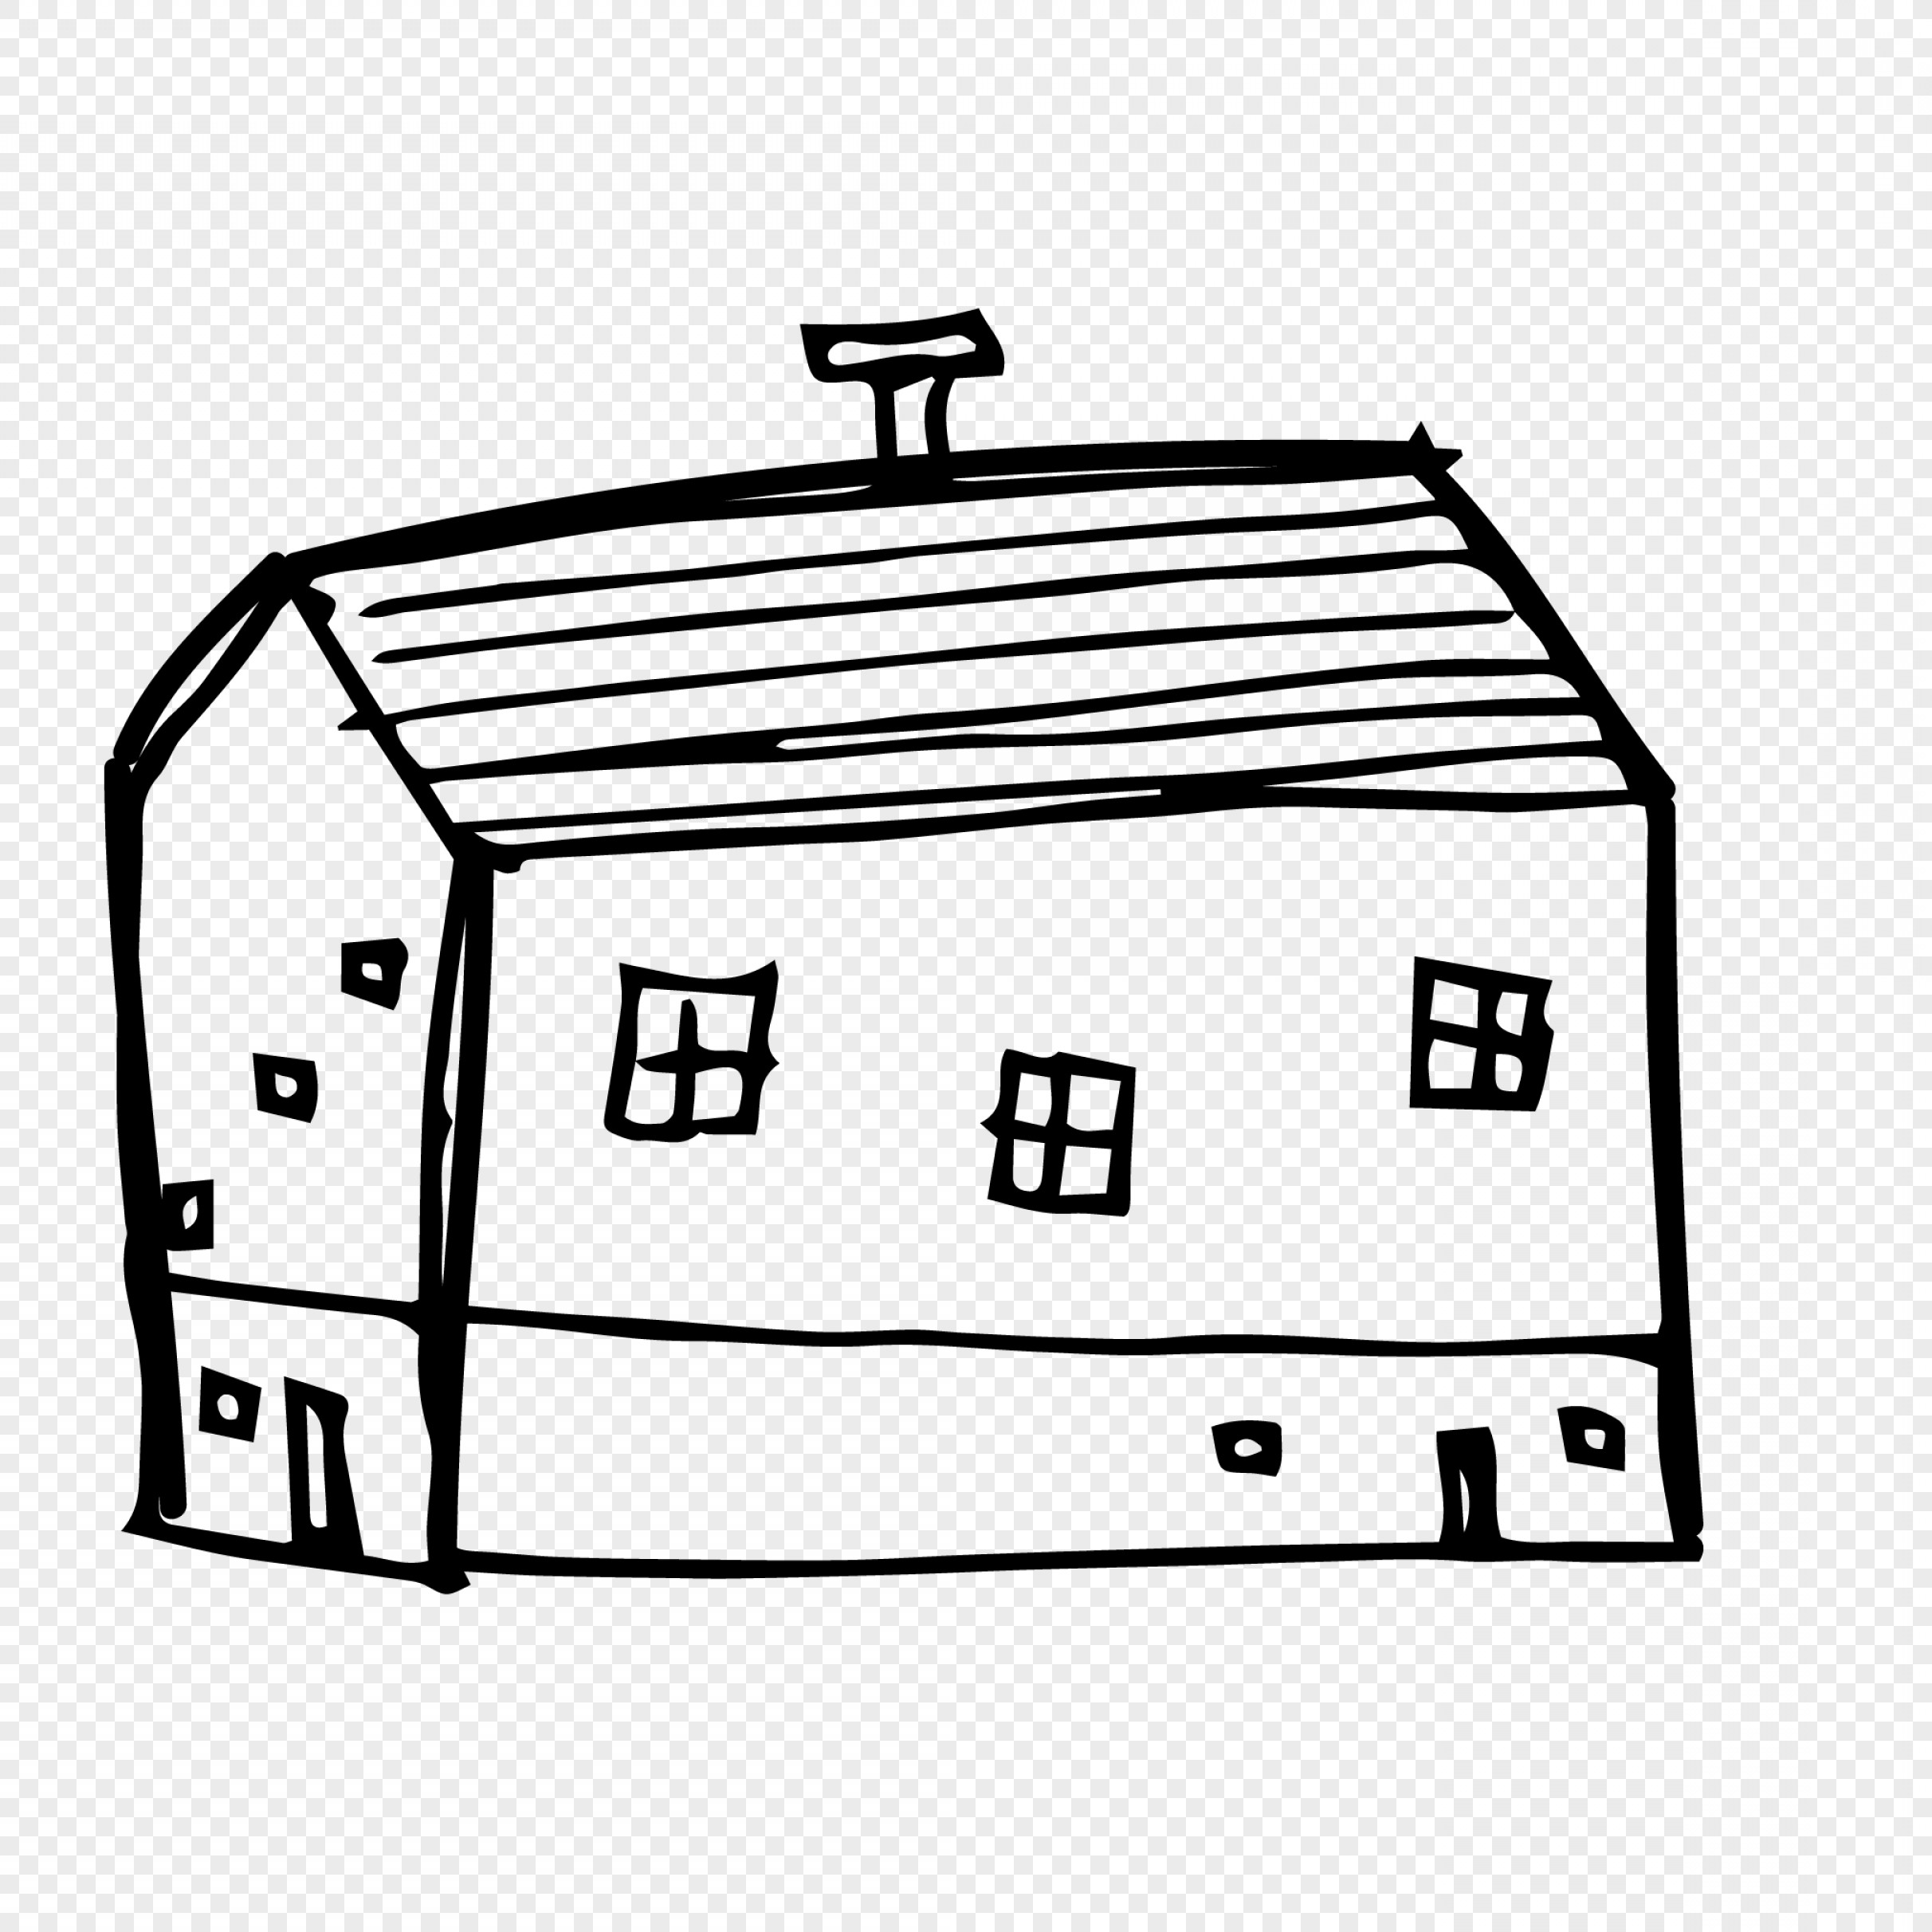 Shed PNG Vector: Cartoon House Line Drawing Building Vector Material